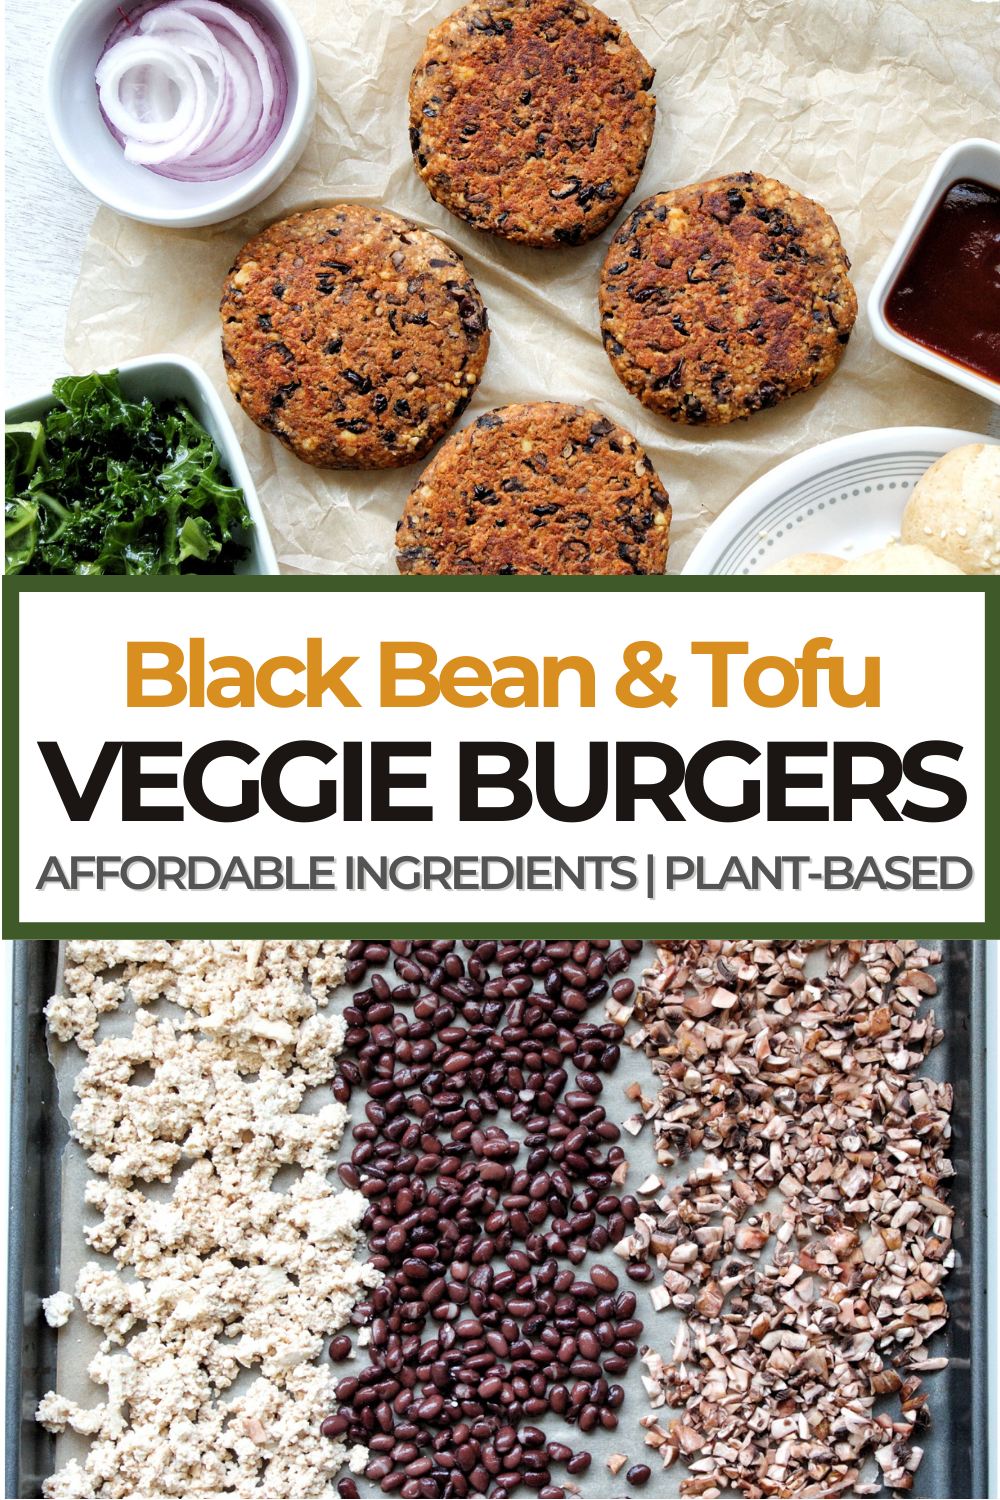 Four black bean burger patties with sliced onion and ketchup in a small bowl